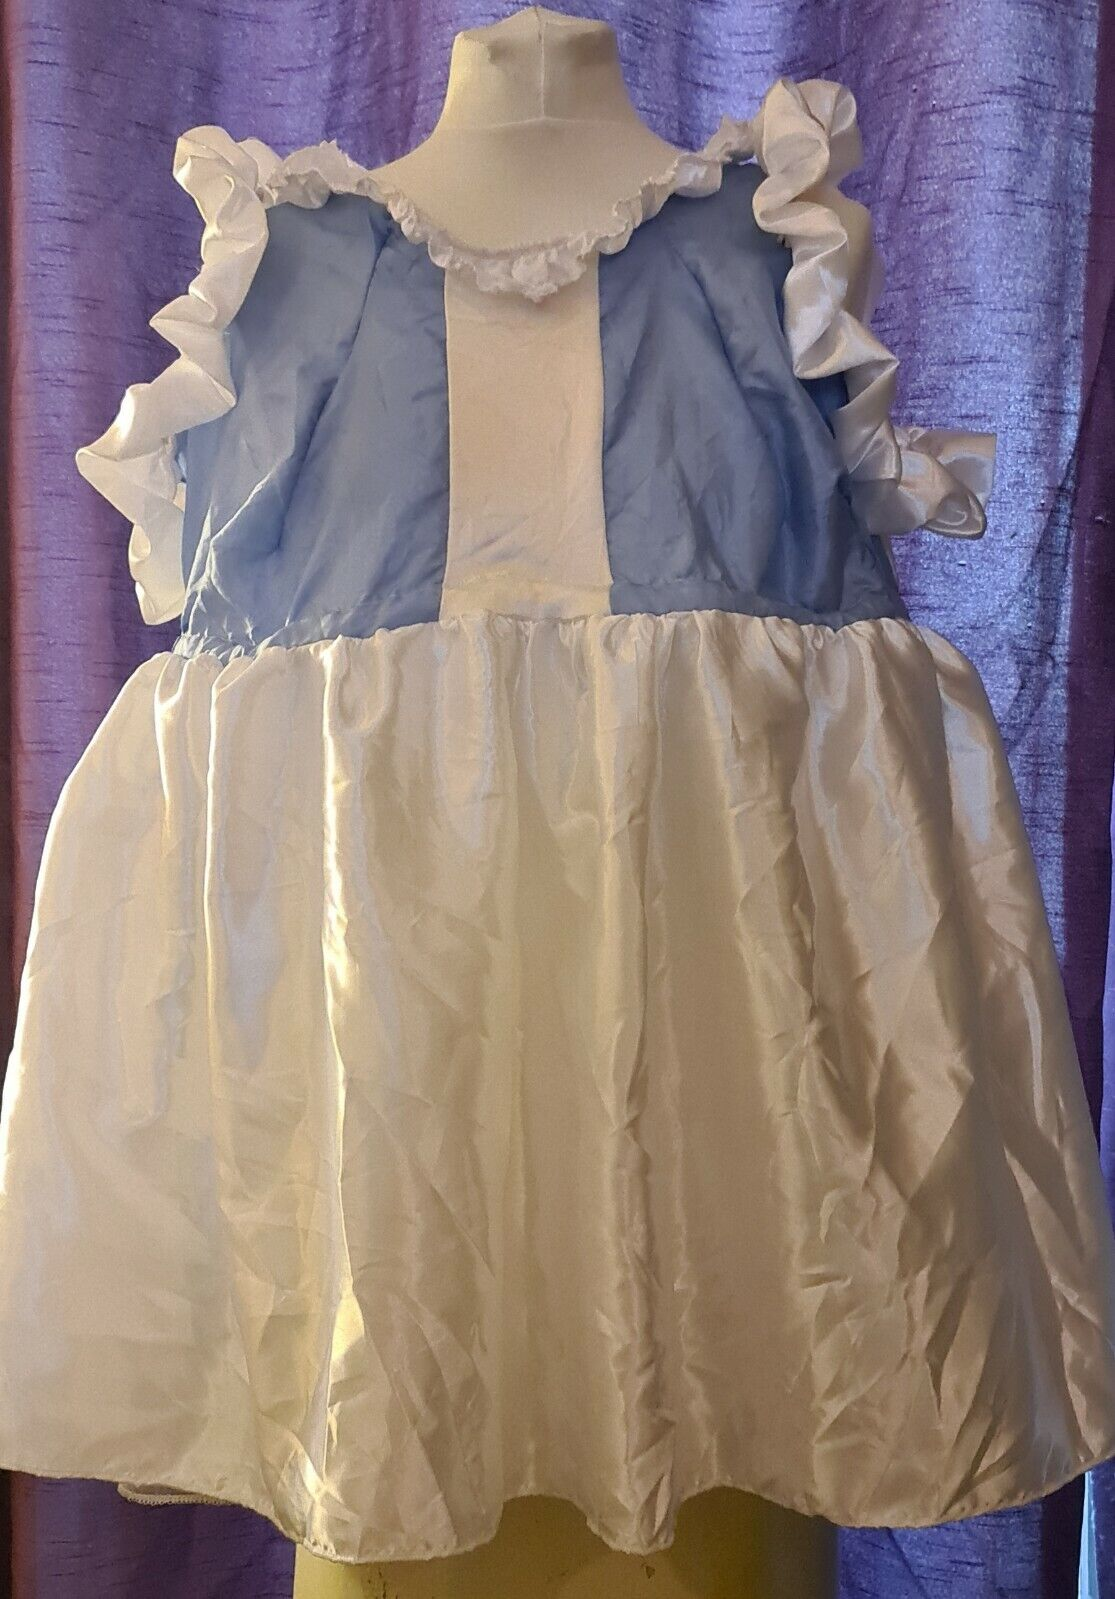 New adult blue white sissy maid sized baby style dress nappy diaper satin ddlg